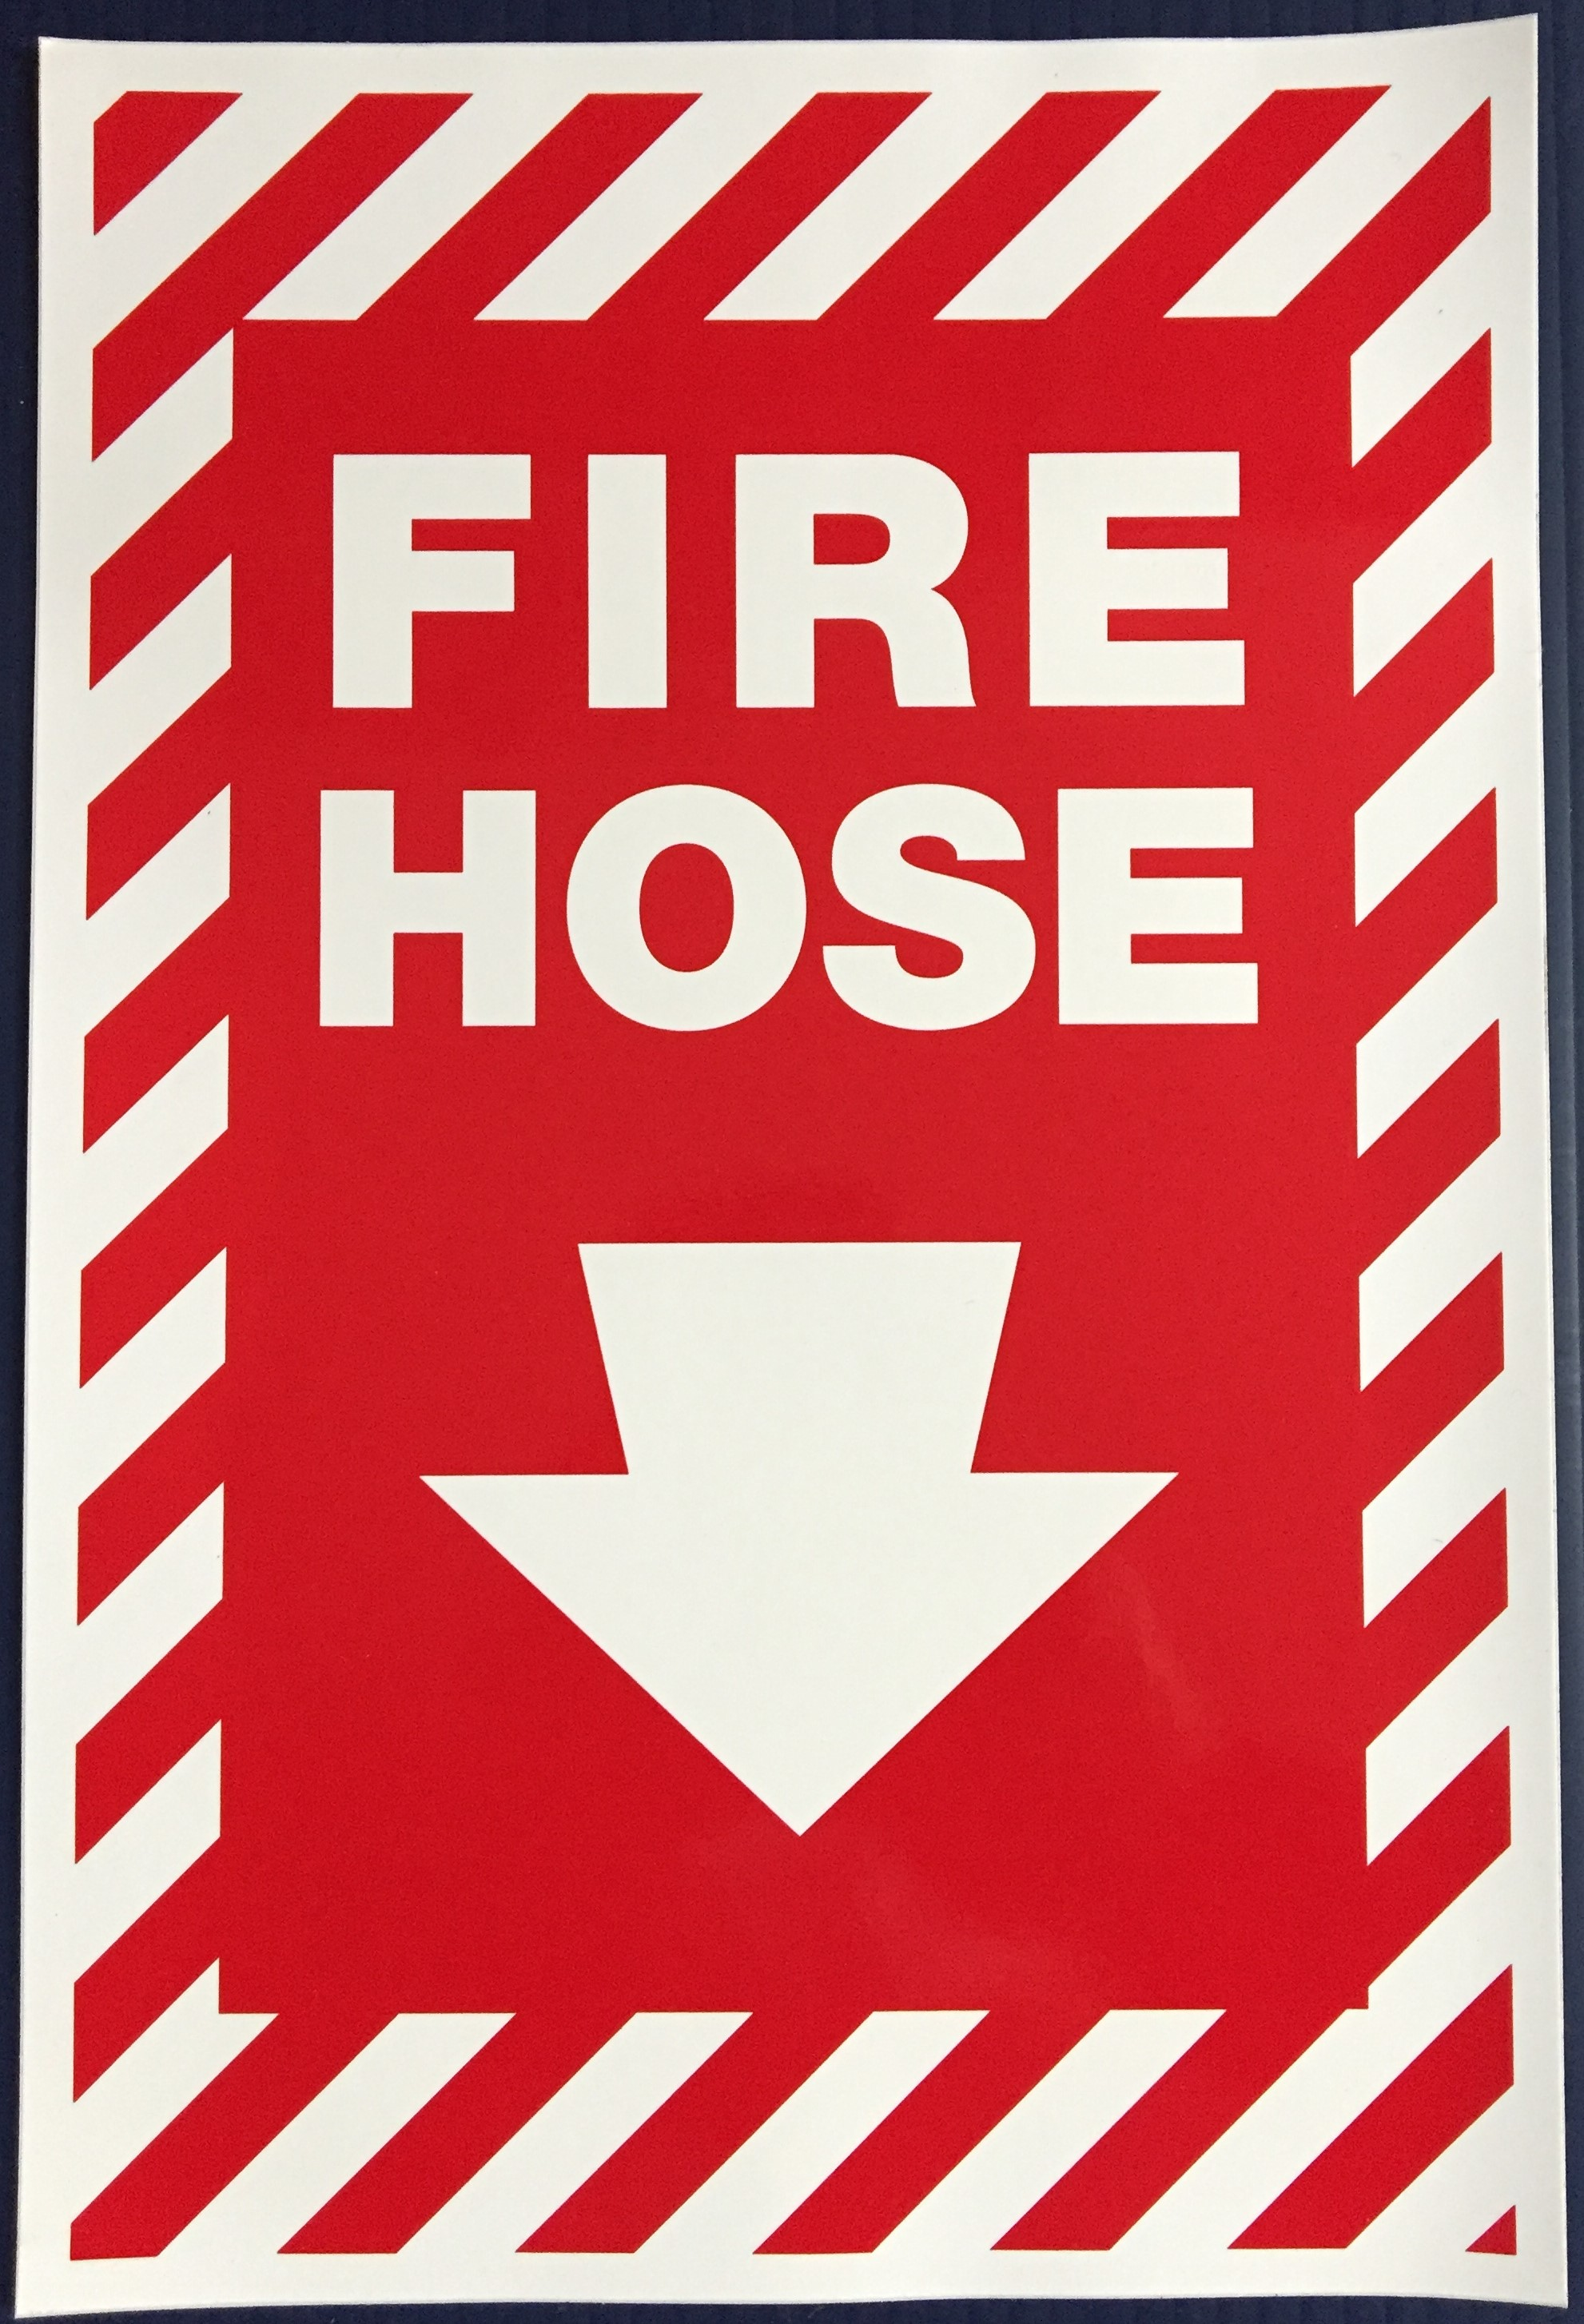 #376 8x12 Vinyl Sticker-Fire Hose arrow